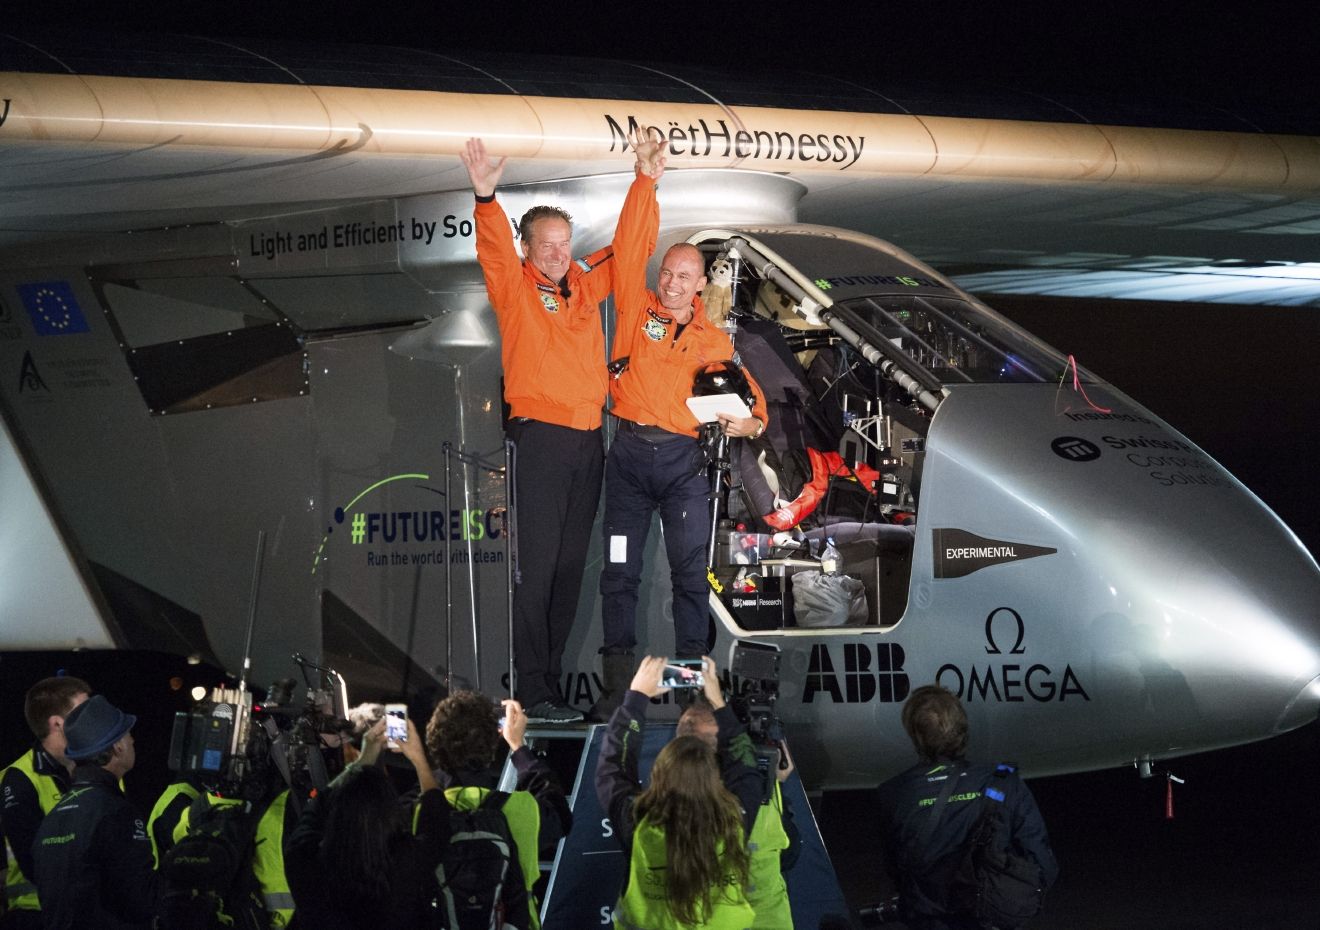 Solar Impulse 2 pilots Bertrand Piccard, right, and Andre Borschberg celebrate after Piccard landed their solar-powered plane at Moffett Field in Mountain View, Calif.,  on Saturday, April 23, 2016. The solar-powered airplane landed in California on Saturday, completing a risky, three-day flight across the Pacific Ocean as part of its journey around the world. (AP Photo/Noah Berger)